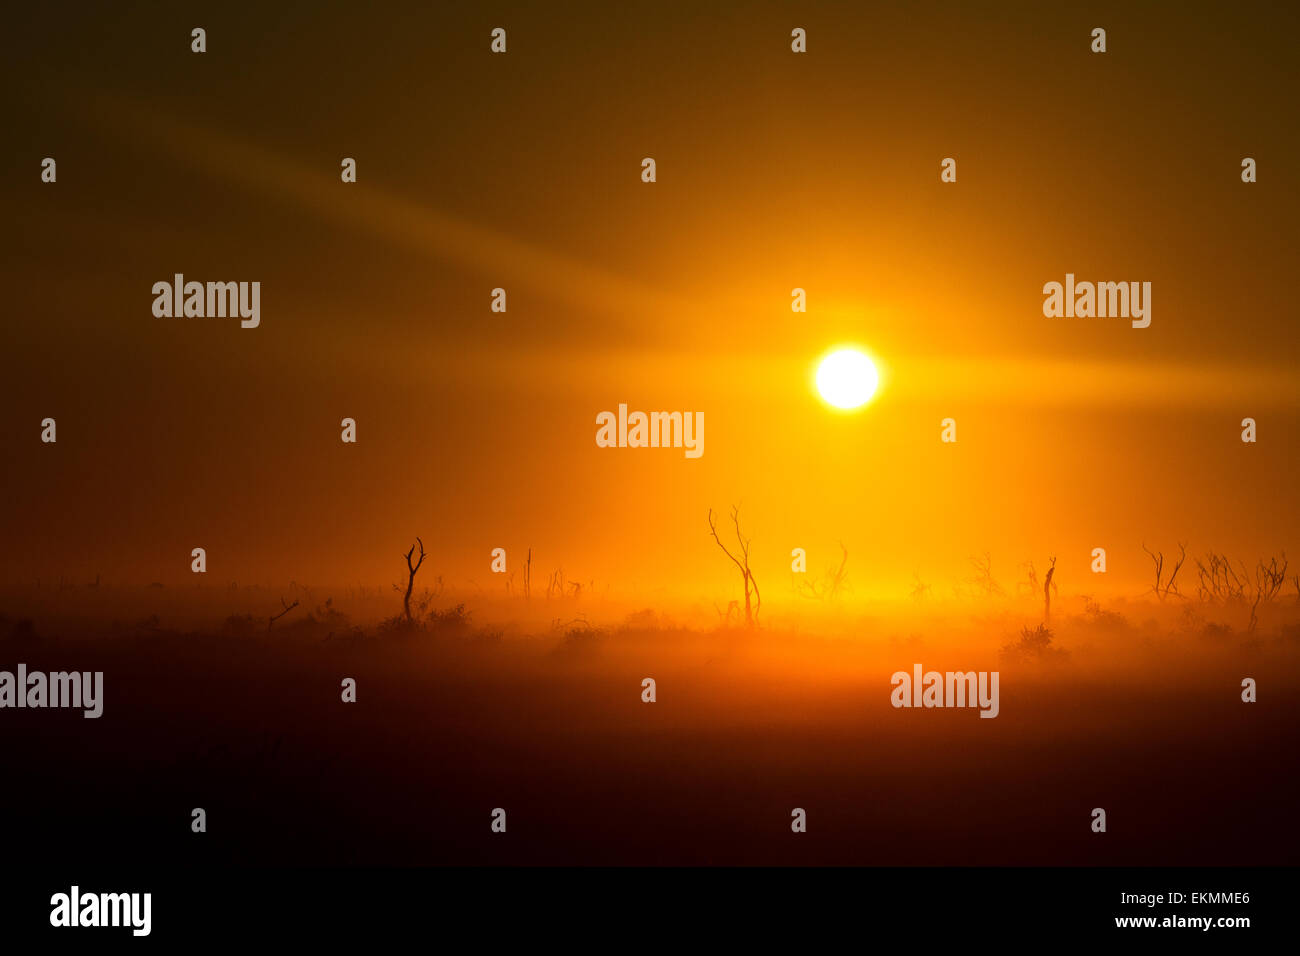 Apocalypse on a wake of a foggy and sunny morning in the Australian outback - Stock Image